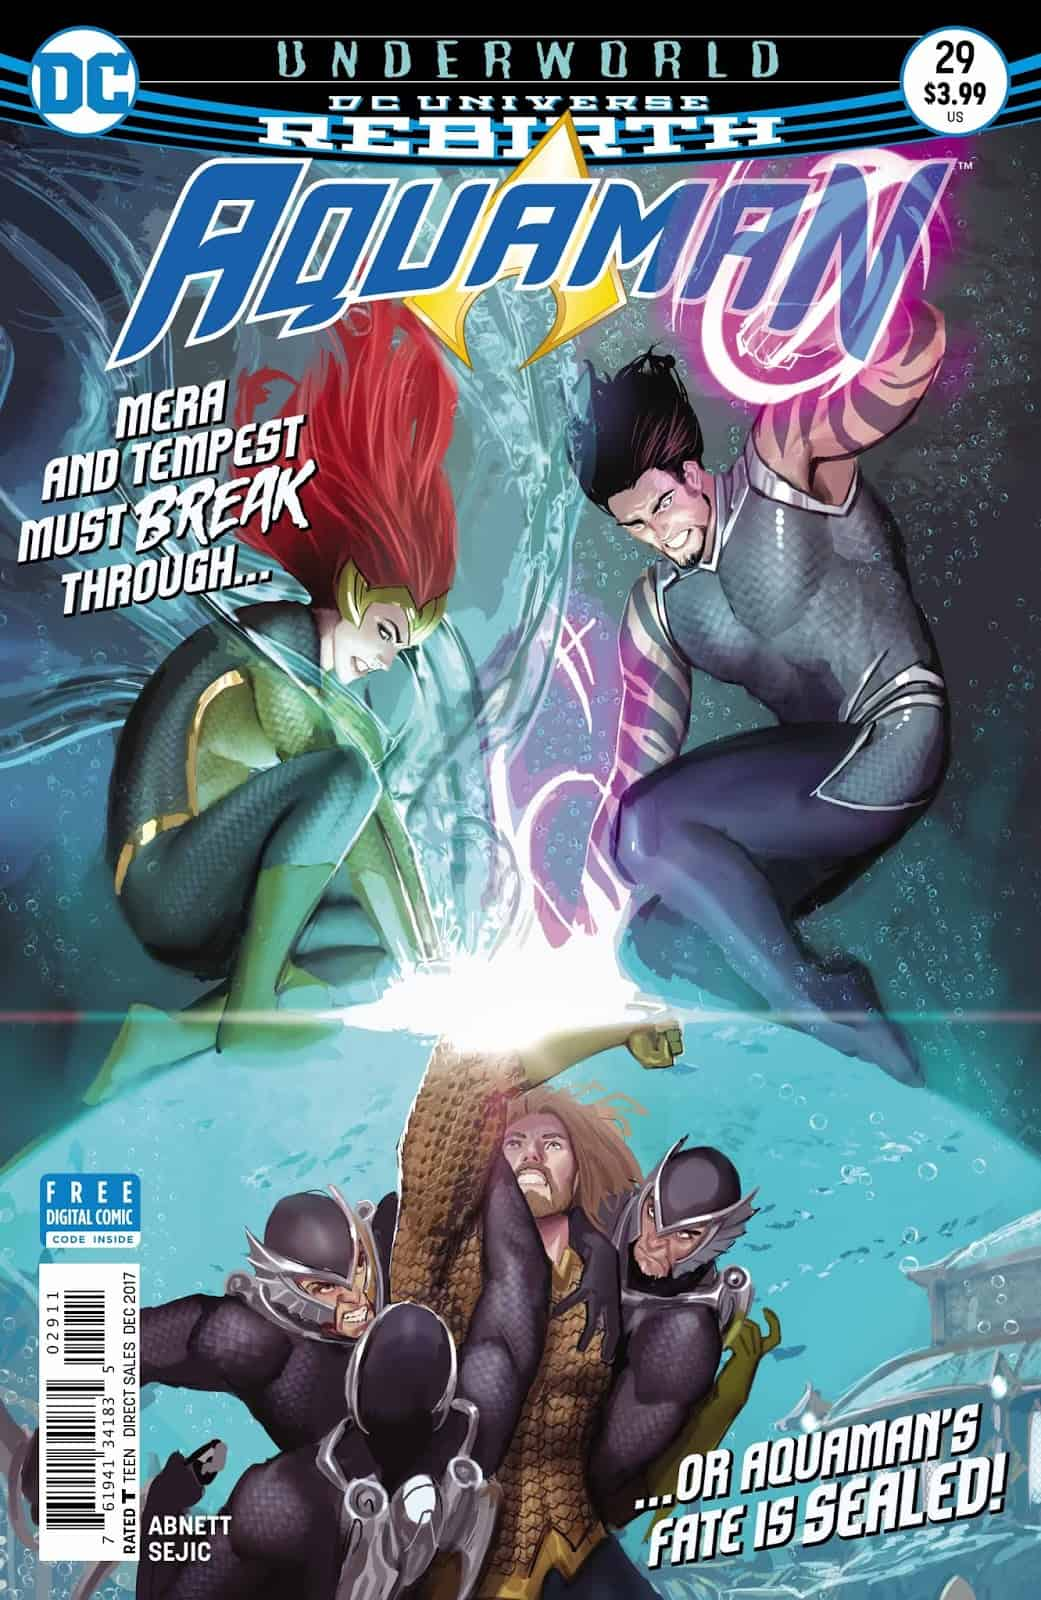 Underworld, Part 5 (Aquaman #29 Review) - Comic Watch